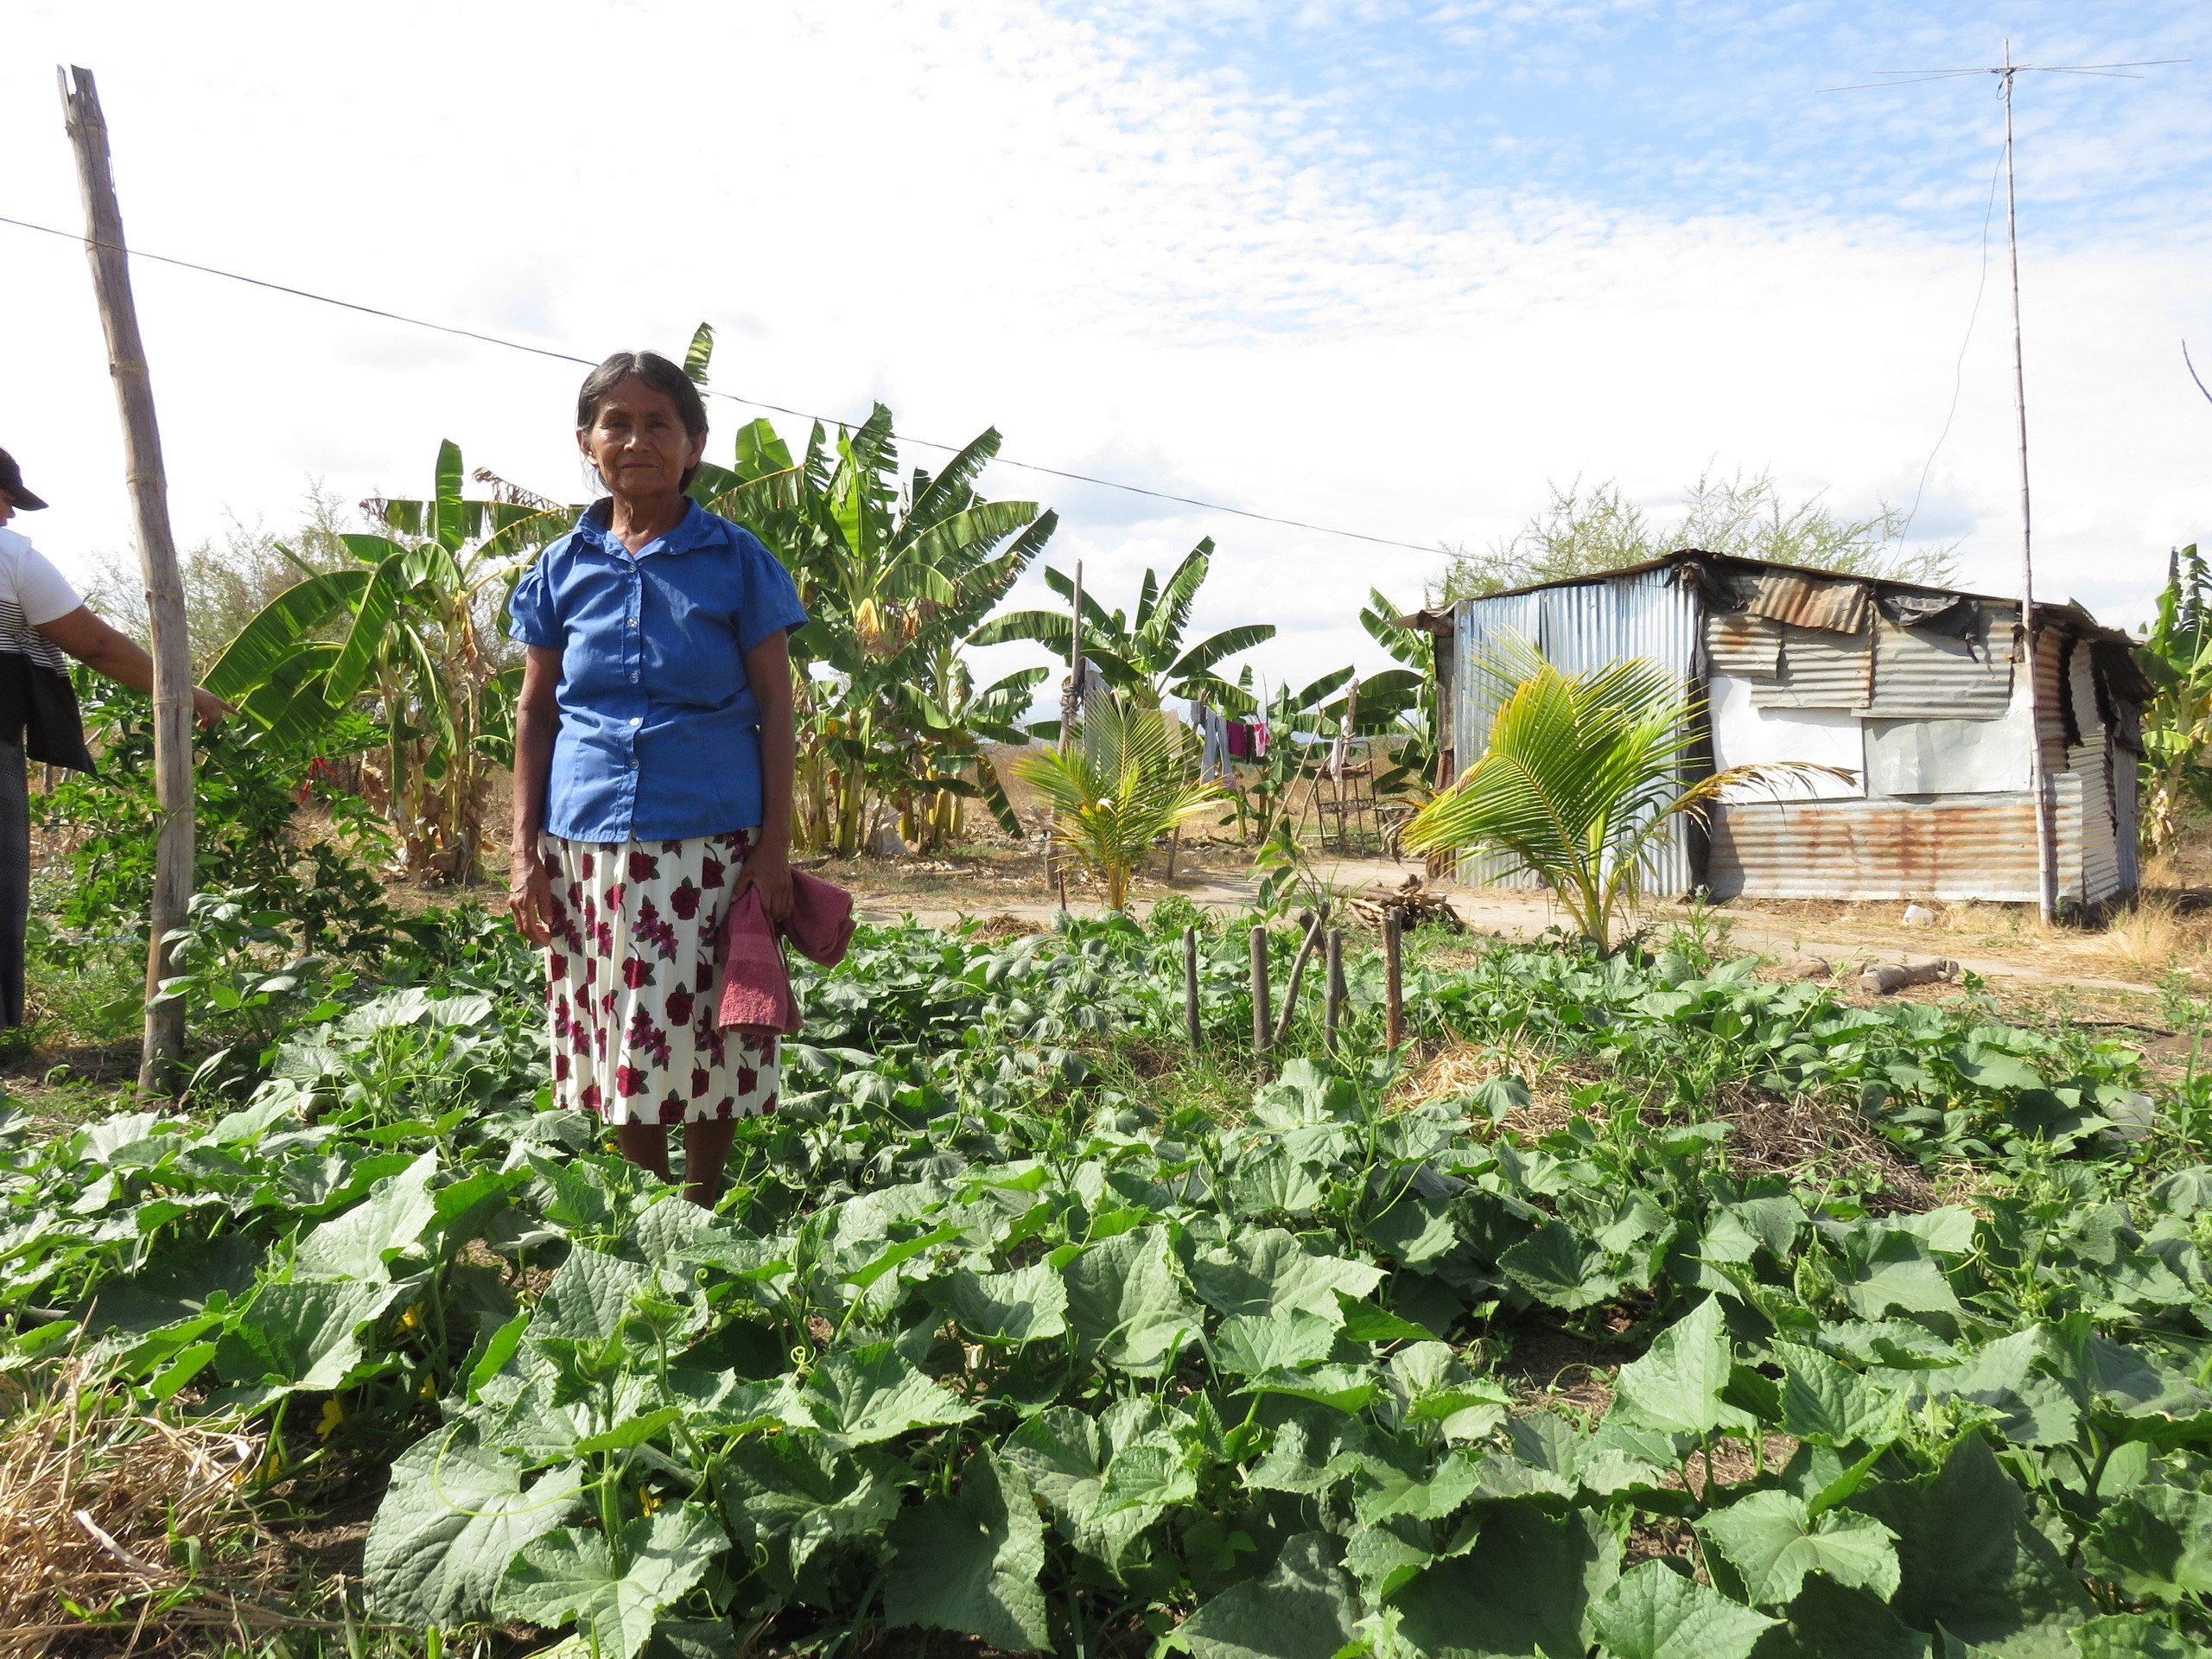 Maria Antonia, an older ESPERA woman living in El Salvador, stands in a field of cabbage in front of her home.